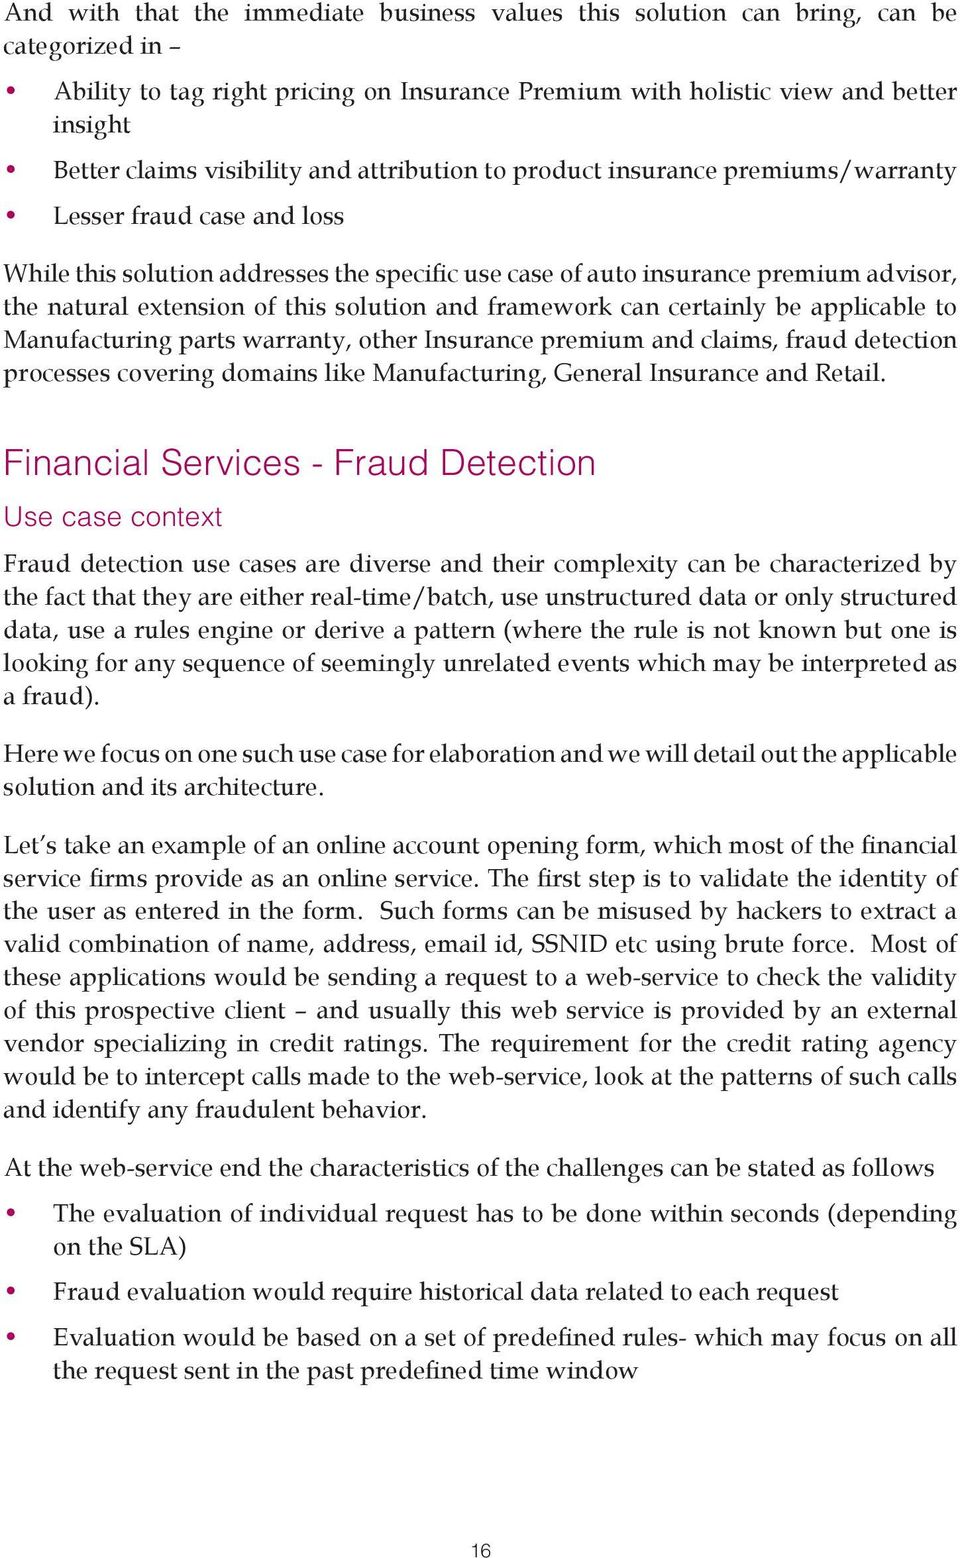 extension of this solution and framework can certainly be applicable to Manufacturing parts warranty, other Insurance premium and claims, fraud detection processes covering domains like